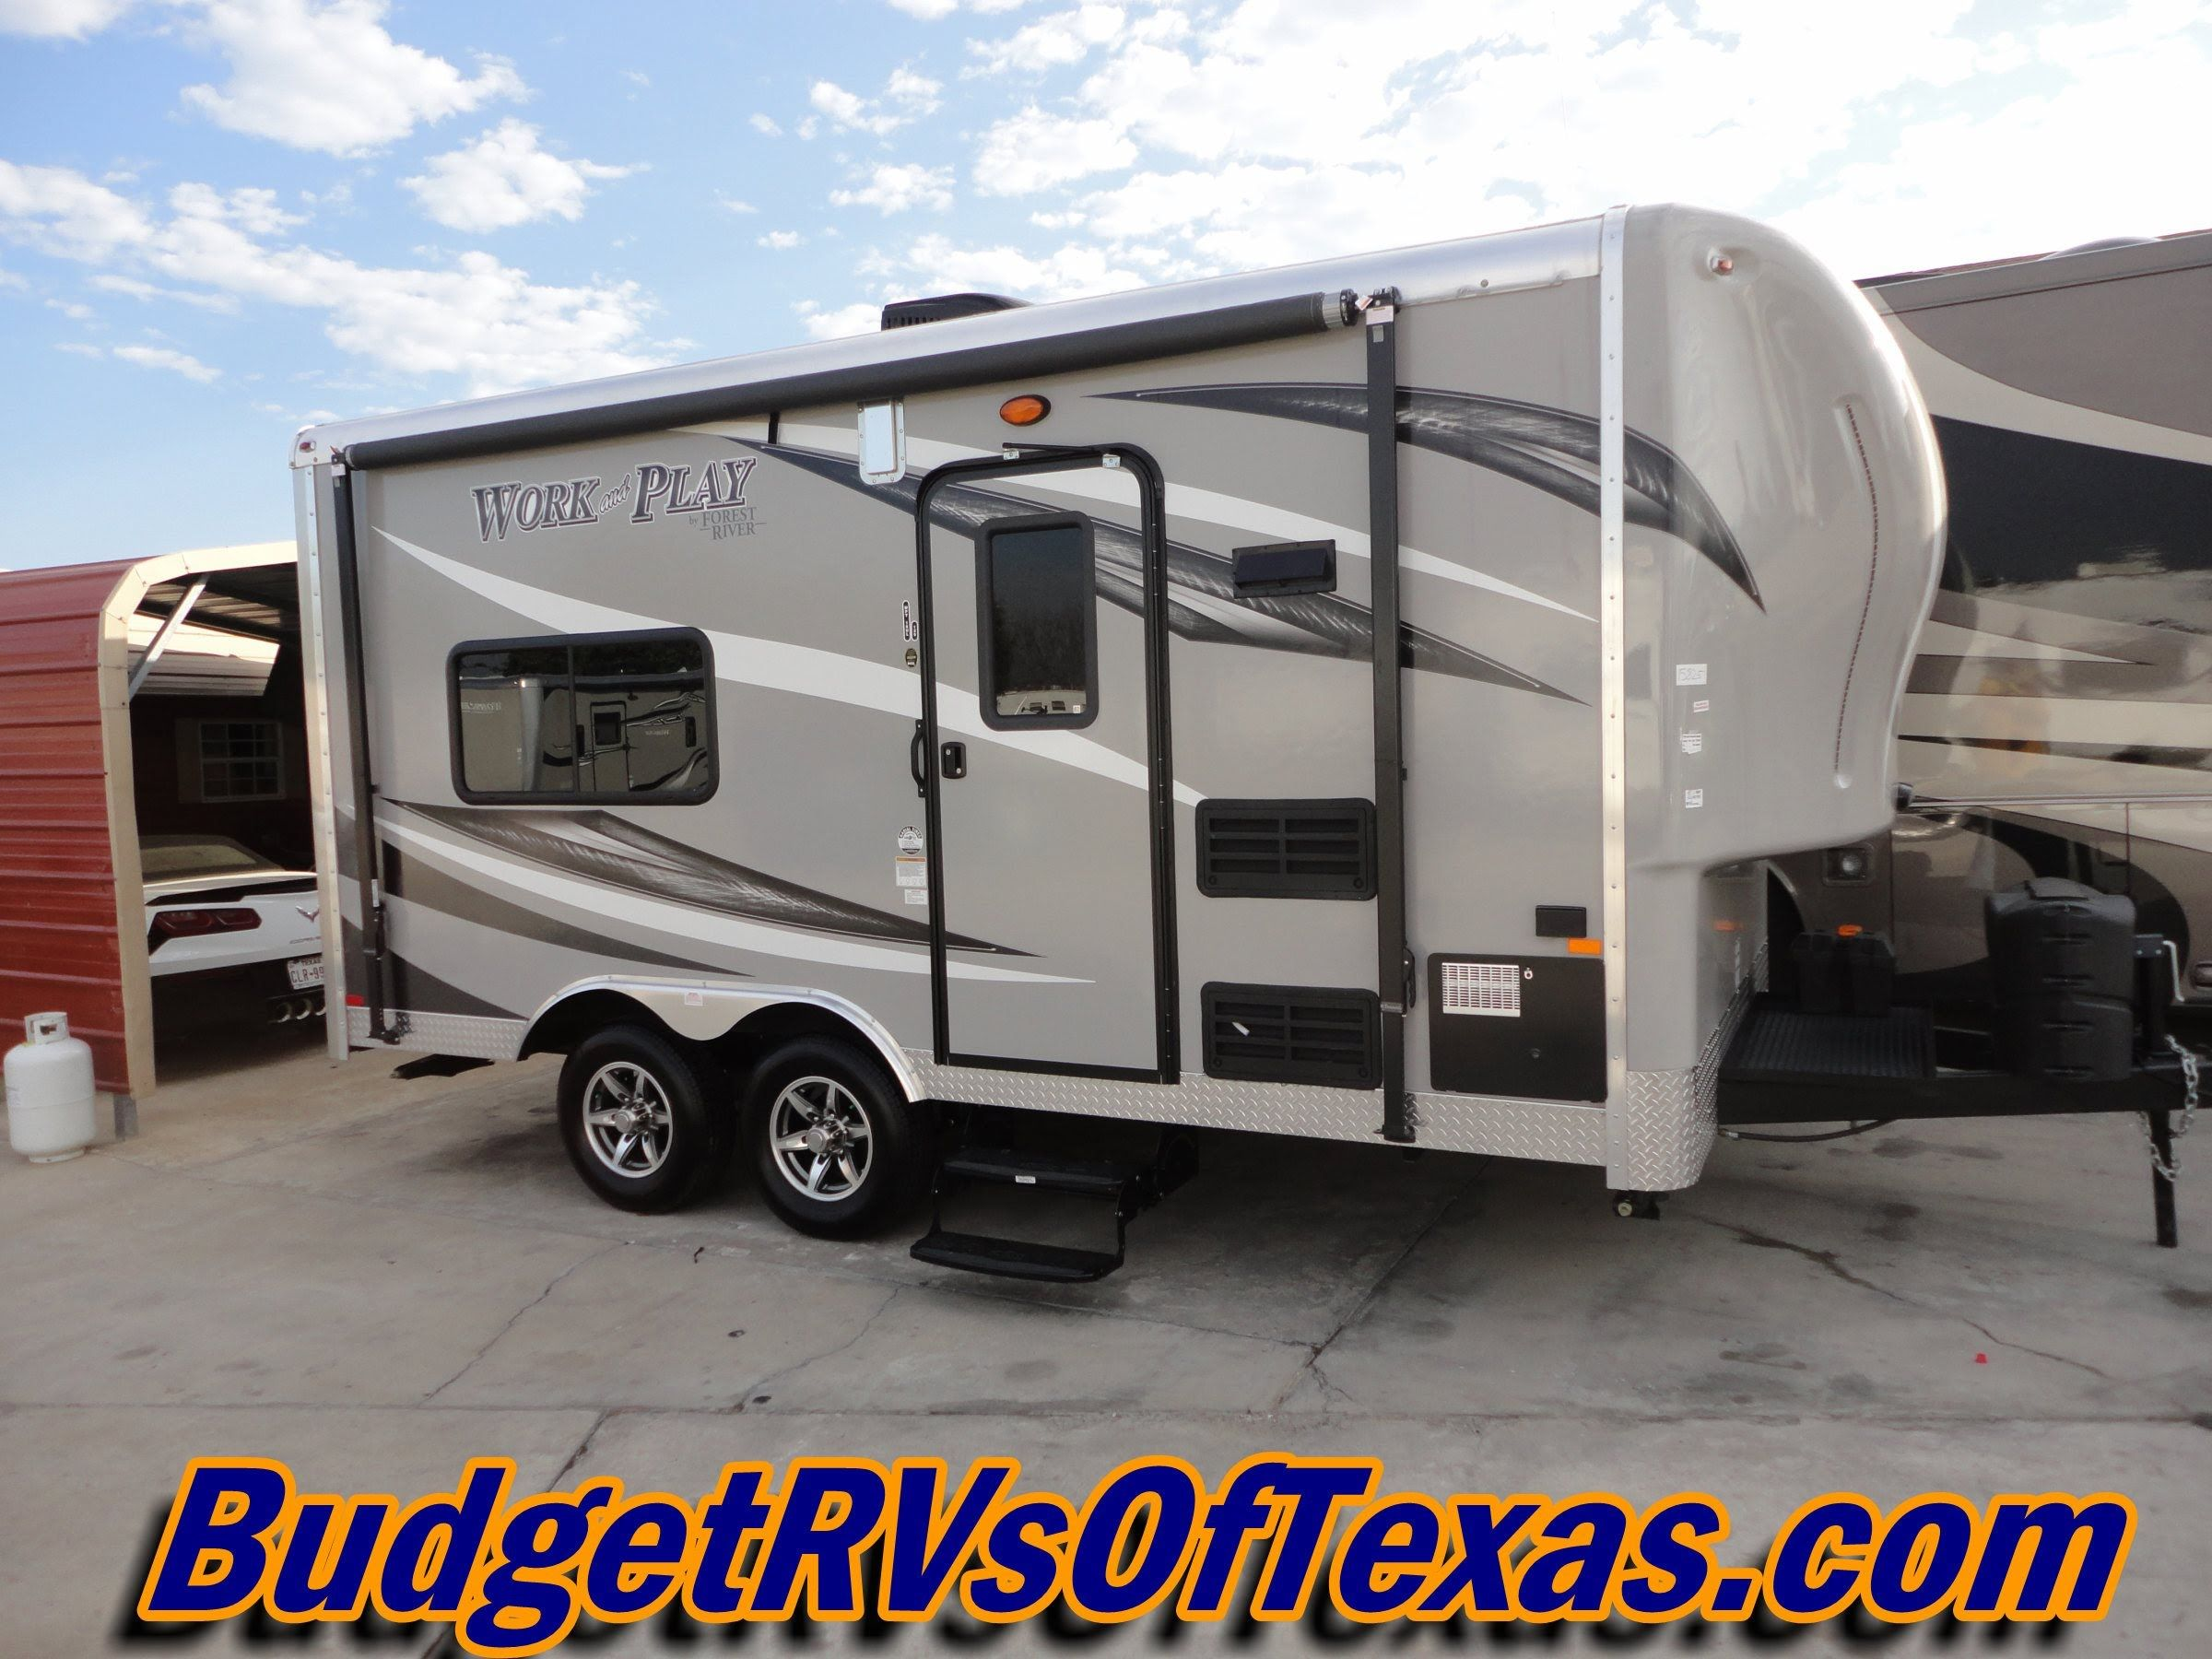 Half Ton Towable Fifth Wheels >> Half Ton Tow 15ft Self Contained Work And Play Toy Hauler